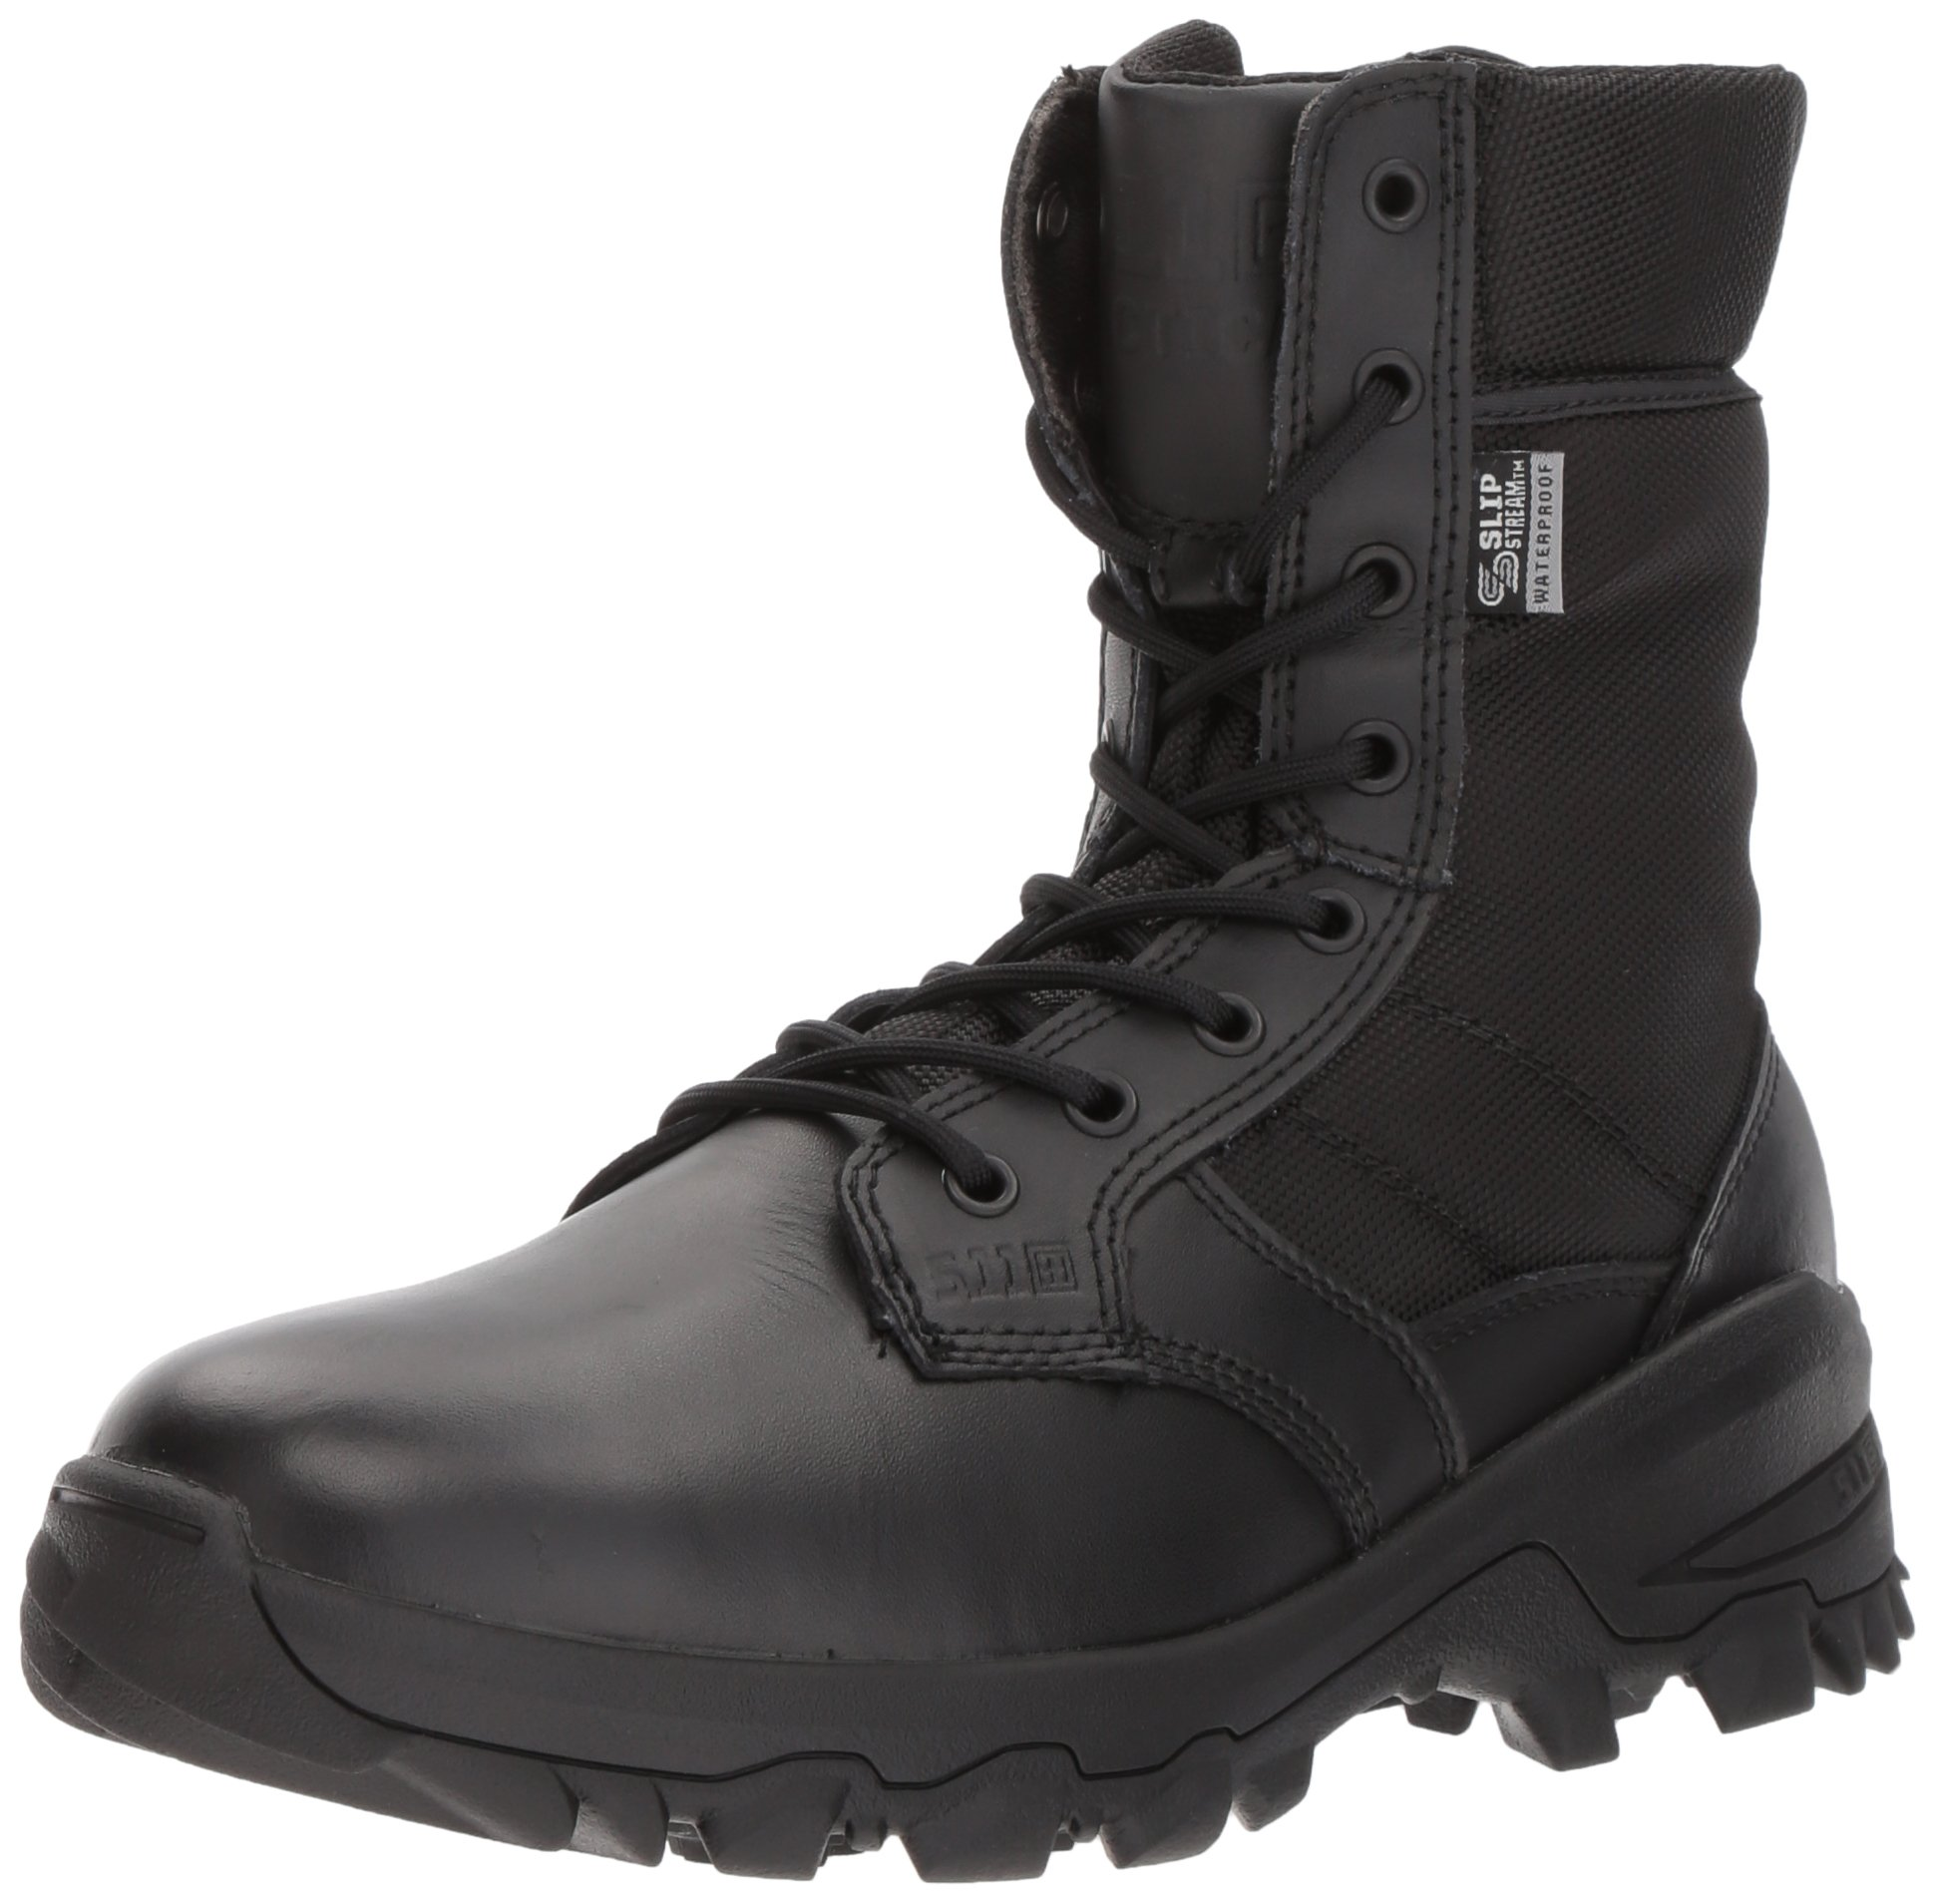 5.11 Men's Speed 3.0 Waterproof Boot Fire and Safety, Black, 10 Medium US by 5.11